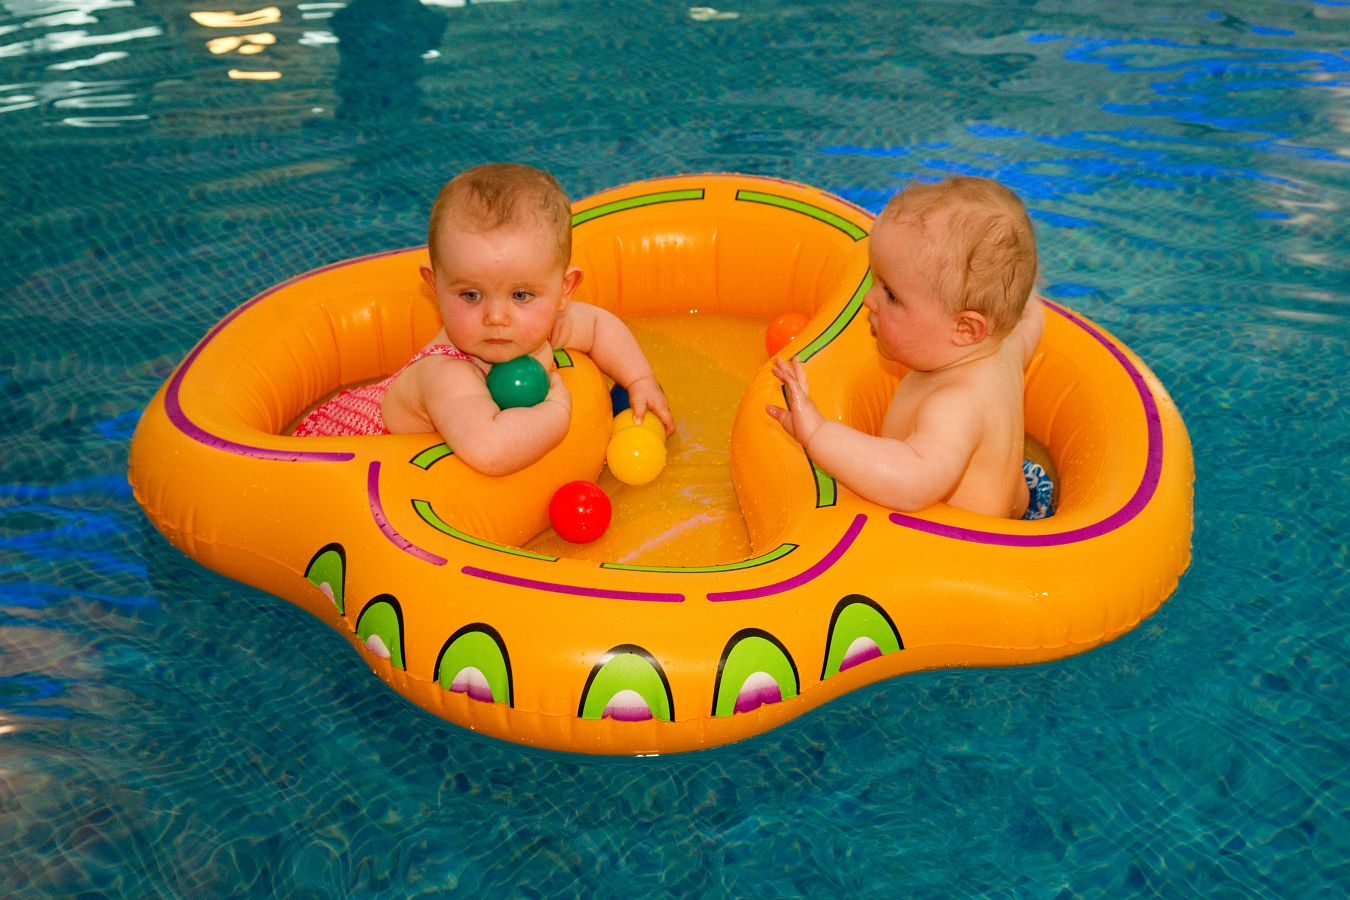 Buy Twins Swim Floats Inflatable Pool Floats Online At Great Prices